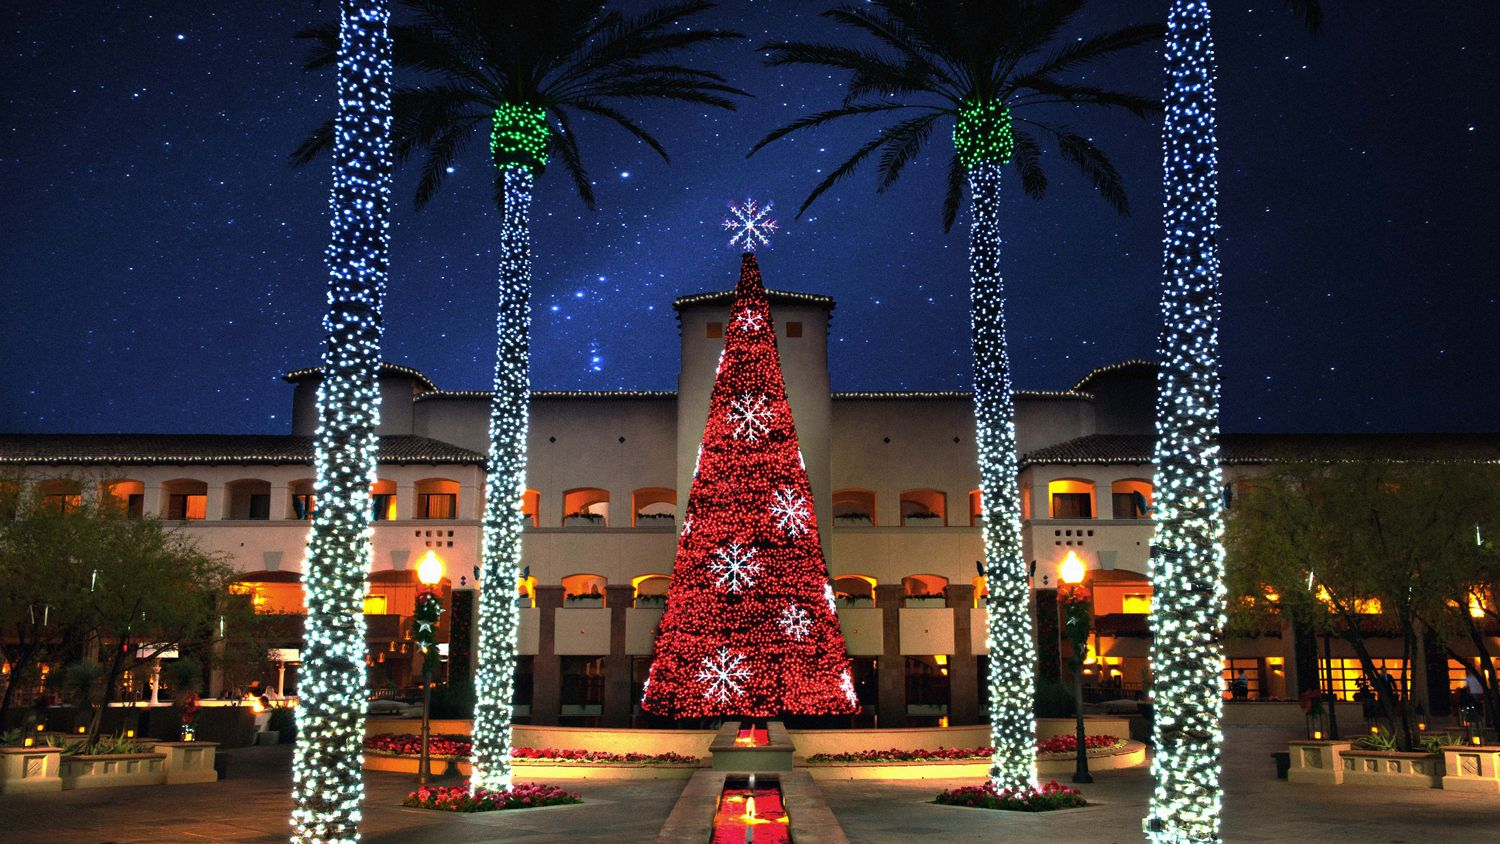 Big Bear Village Christmas.Things To Do For Christmas In The Greater Phoenix Area